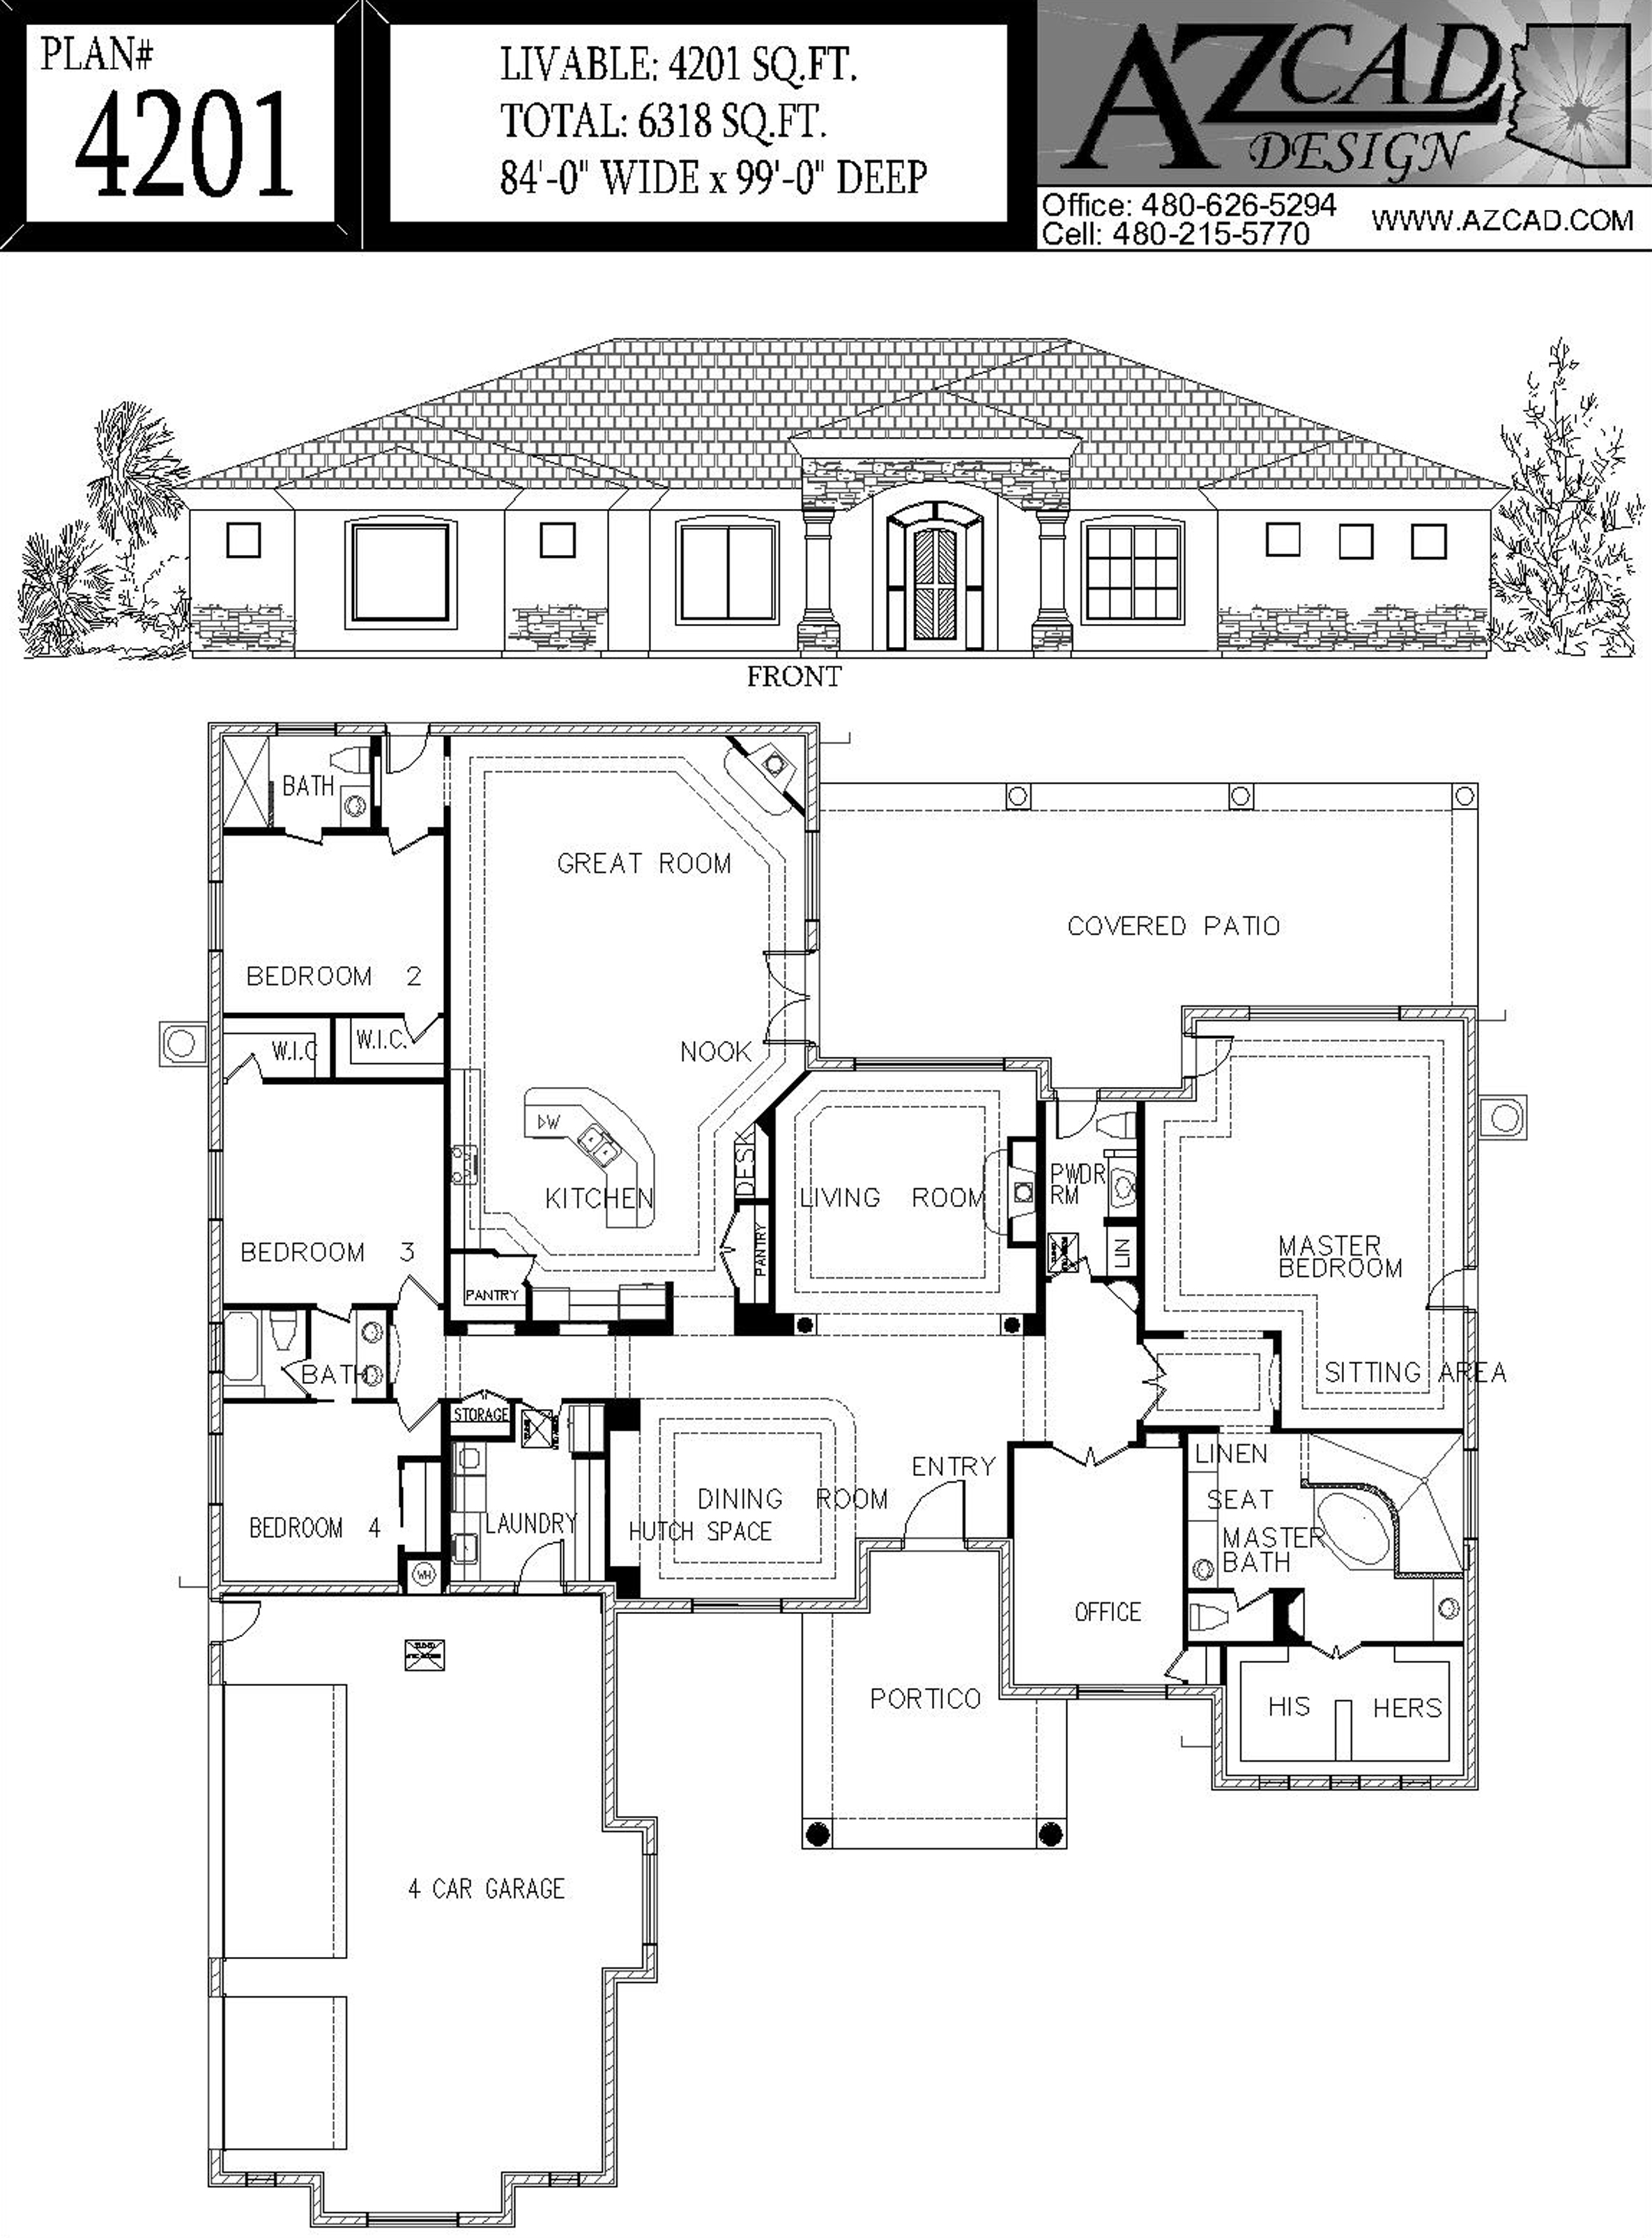 Tucson house plans 28 images house plans tucson 28 for Tucson home builders floor plans